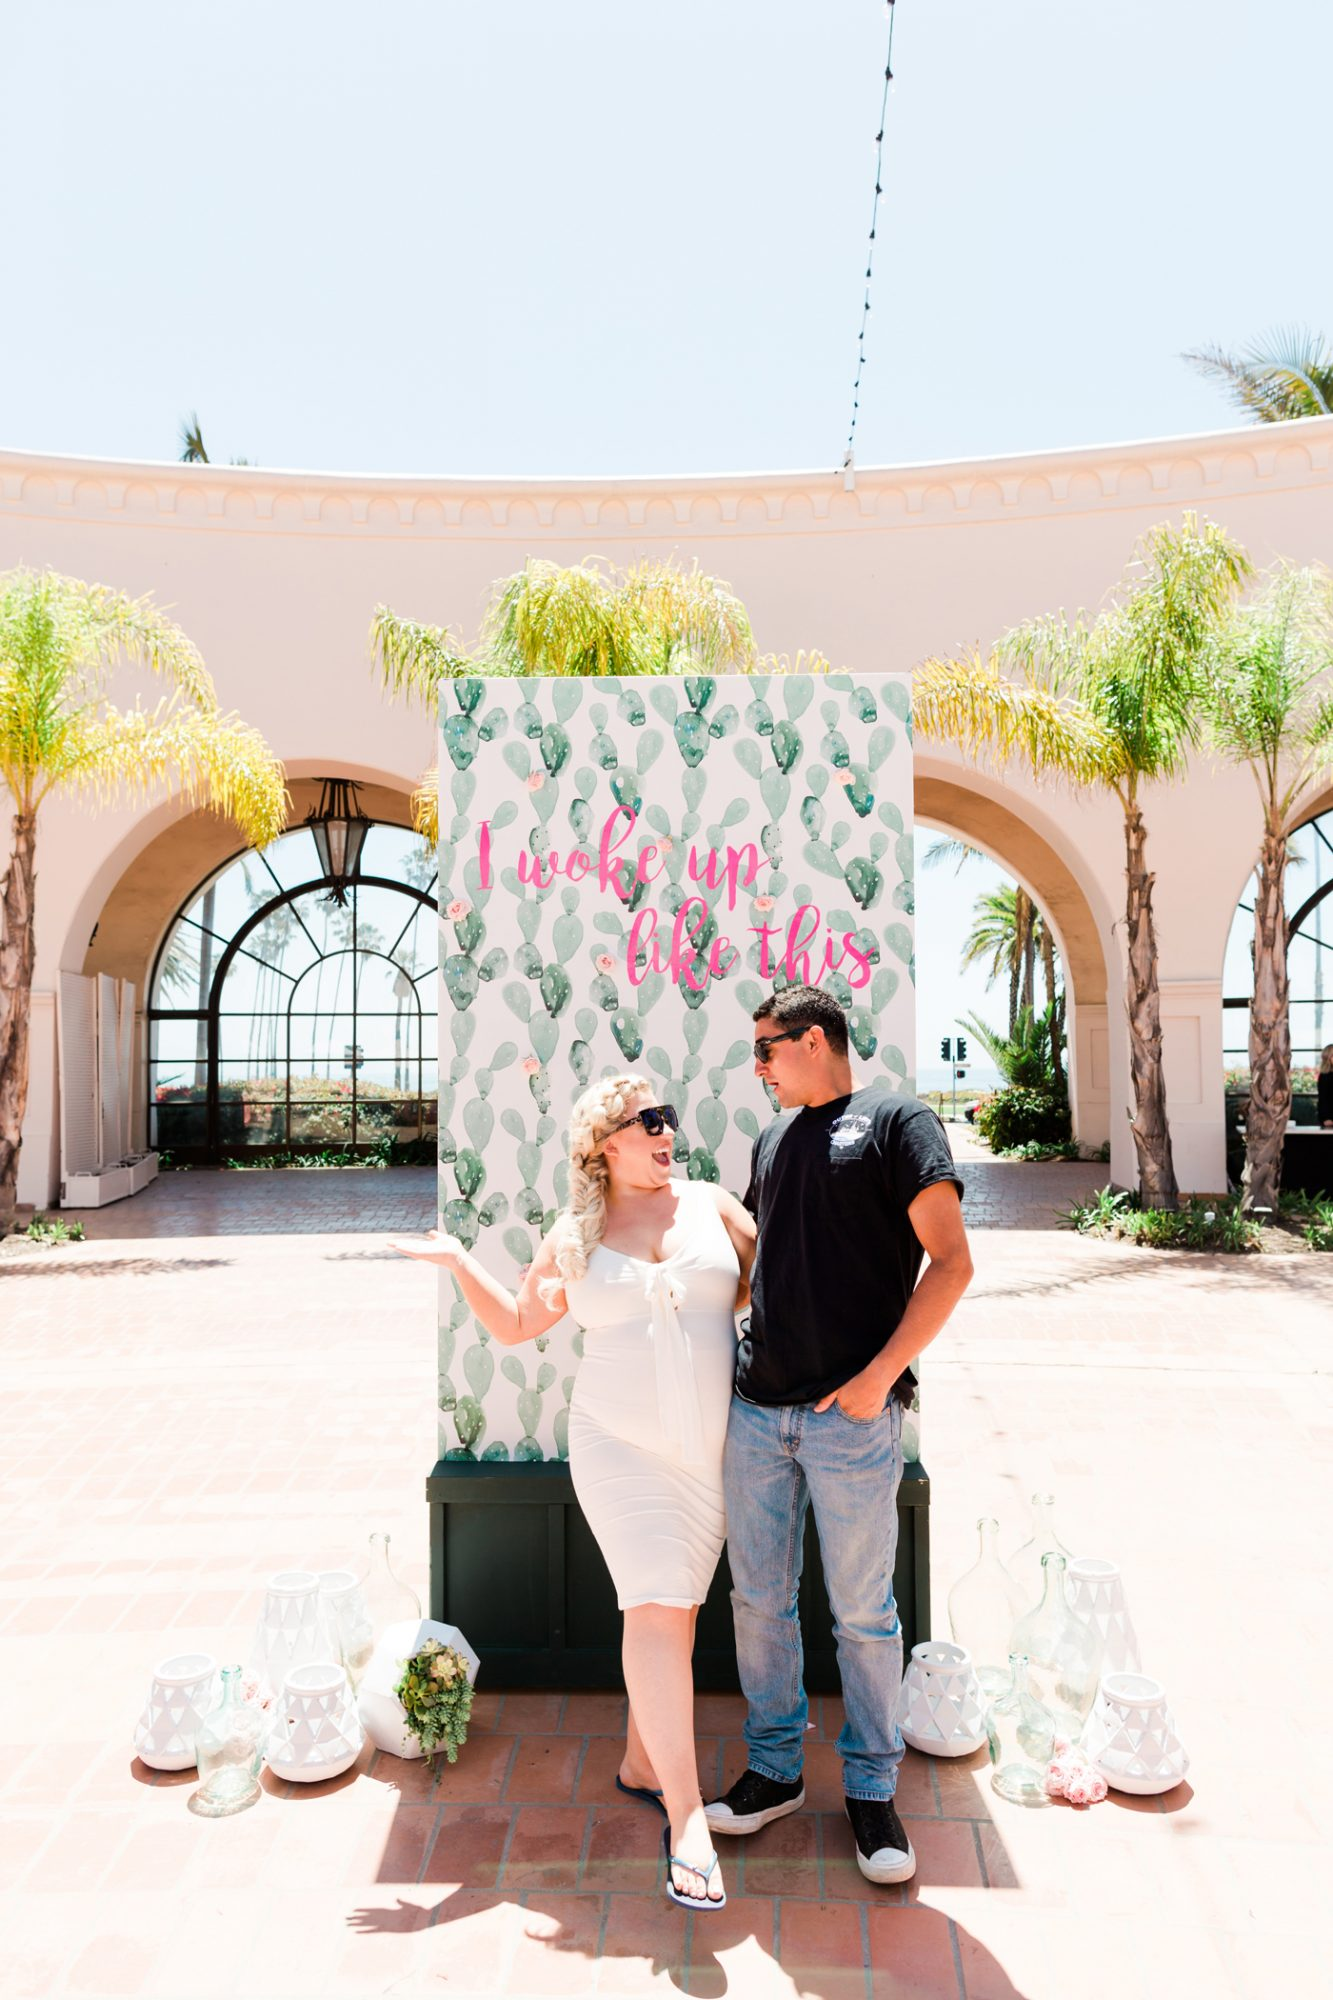 couple stands in front of brunch backdrop